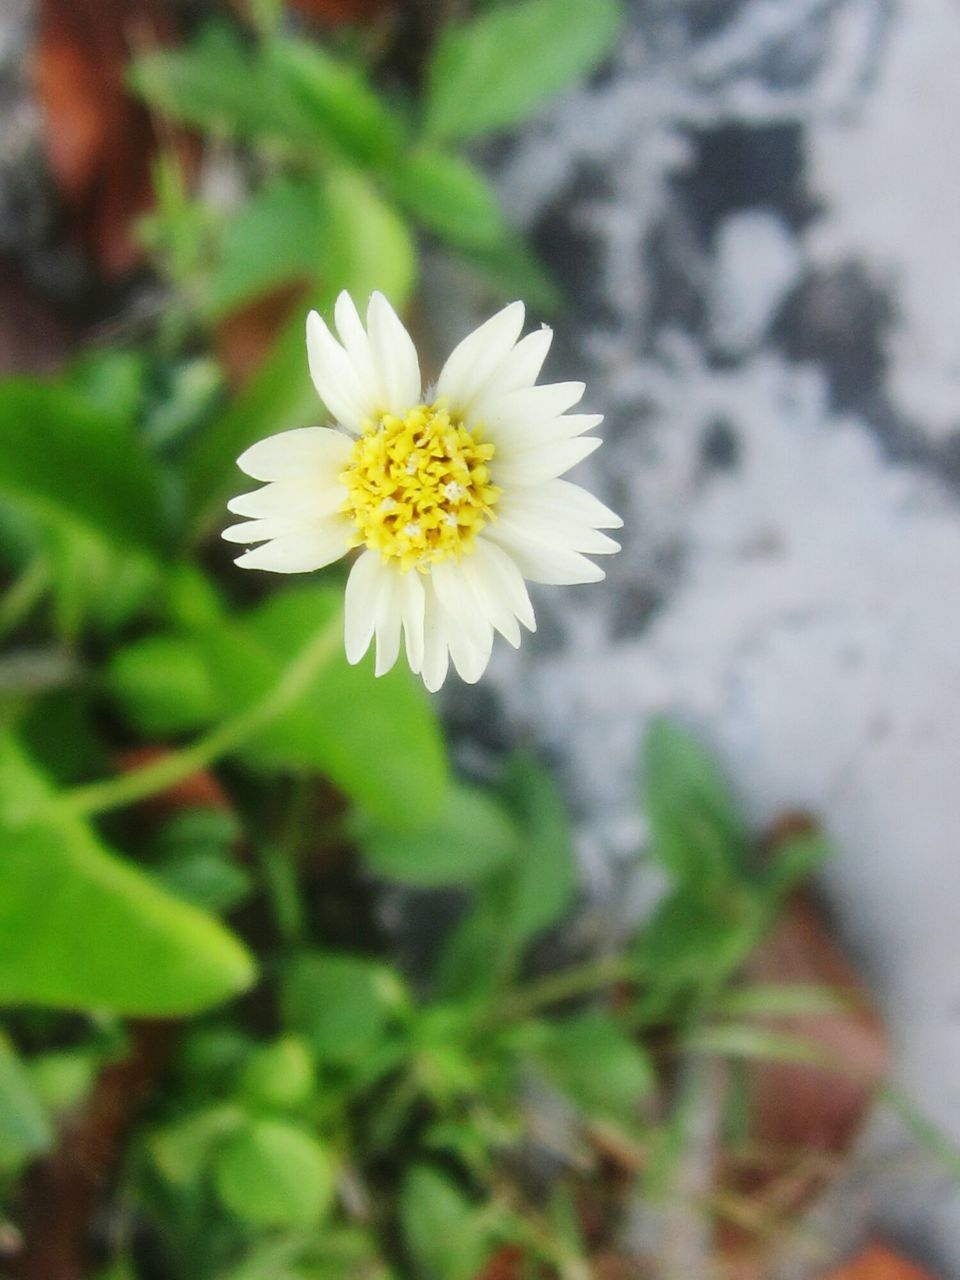 CLOSE-UP OF FRESH WHITE DAISY FLOWER